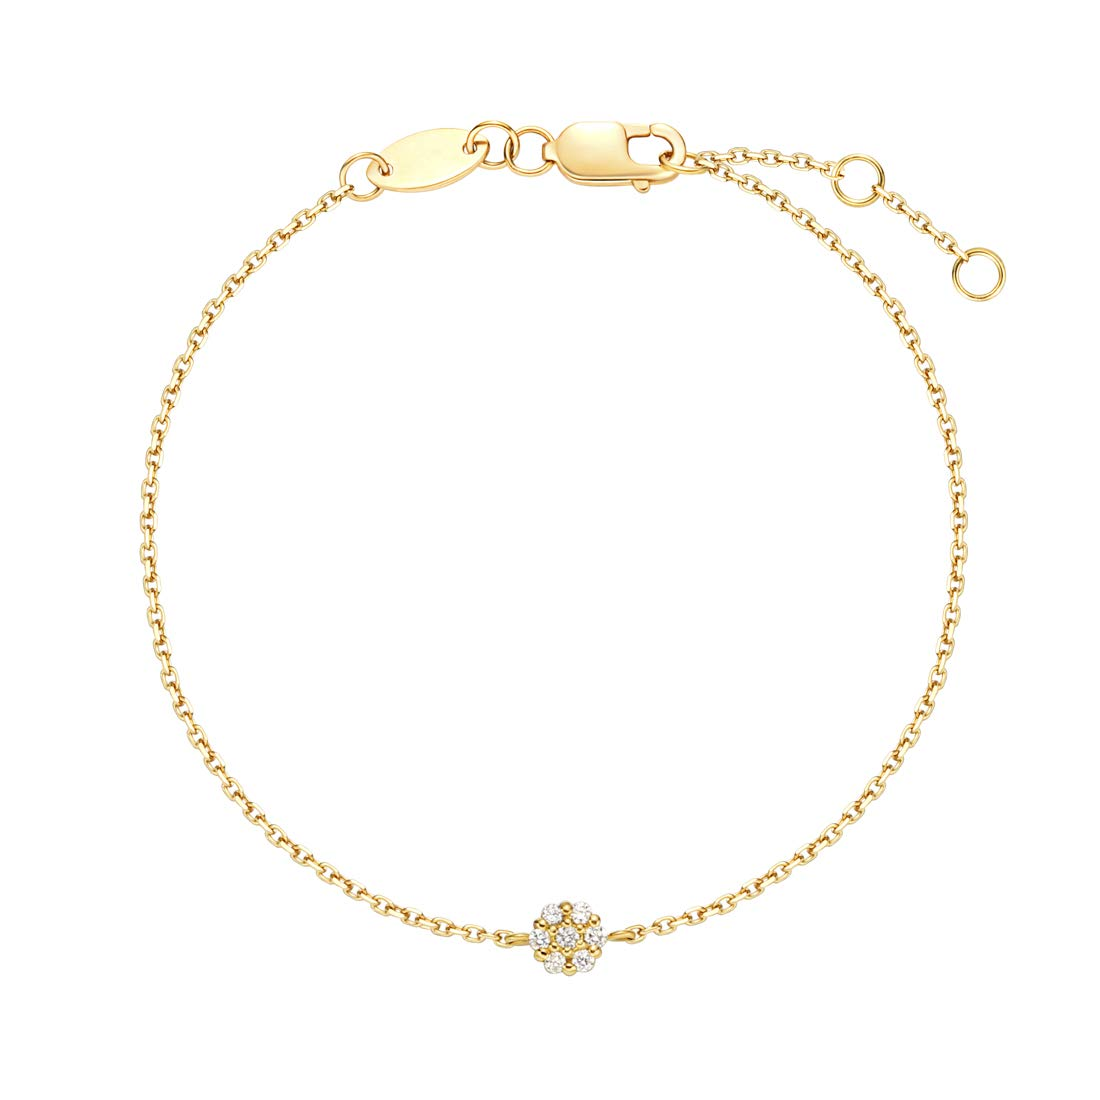 Carleen 18K Solid Yellow Gold Minimalist Dainty Round Floral Pave Diamond Bracelet Delicate Fine Jewelry for Women Girls by Carleen